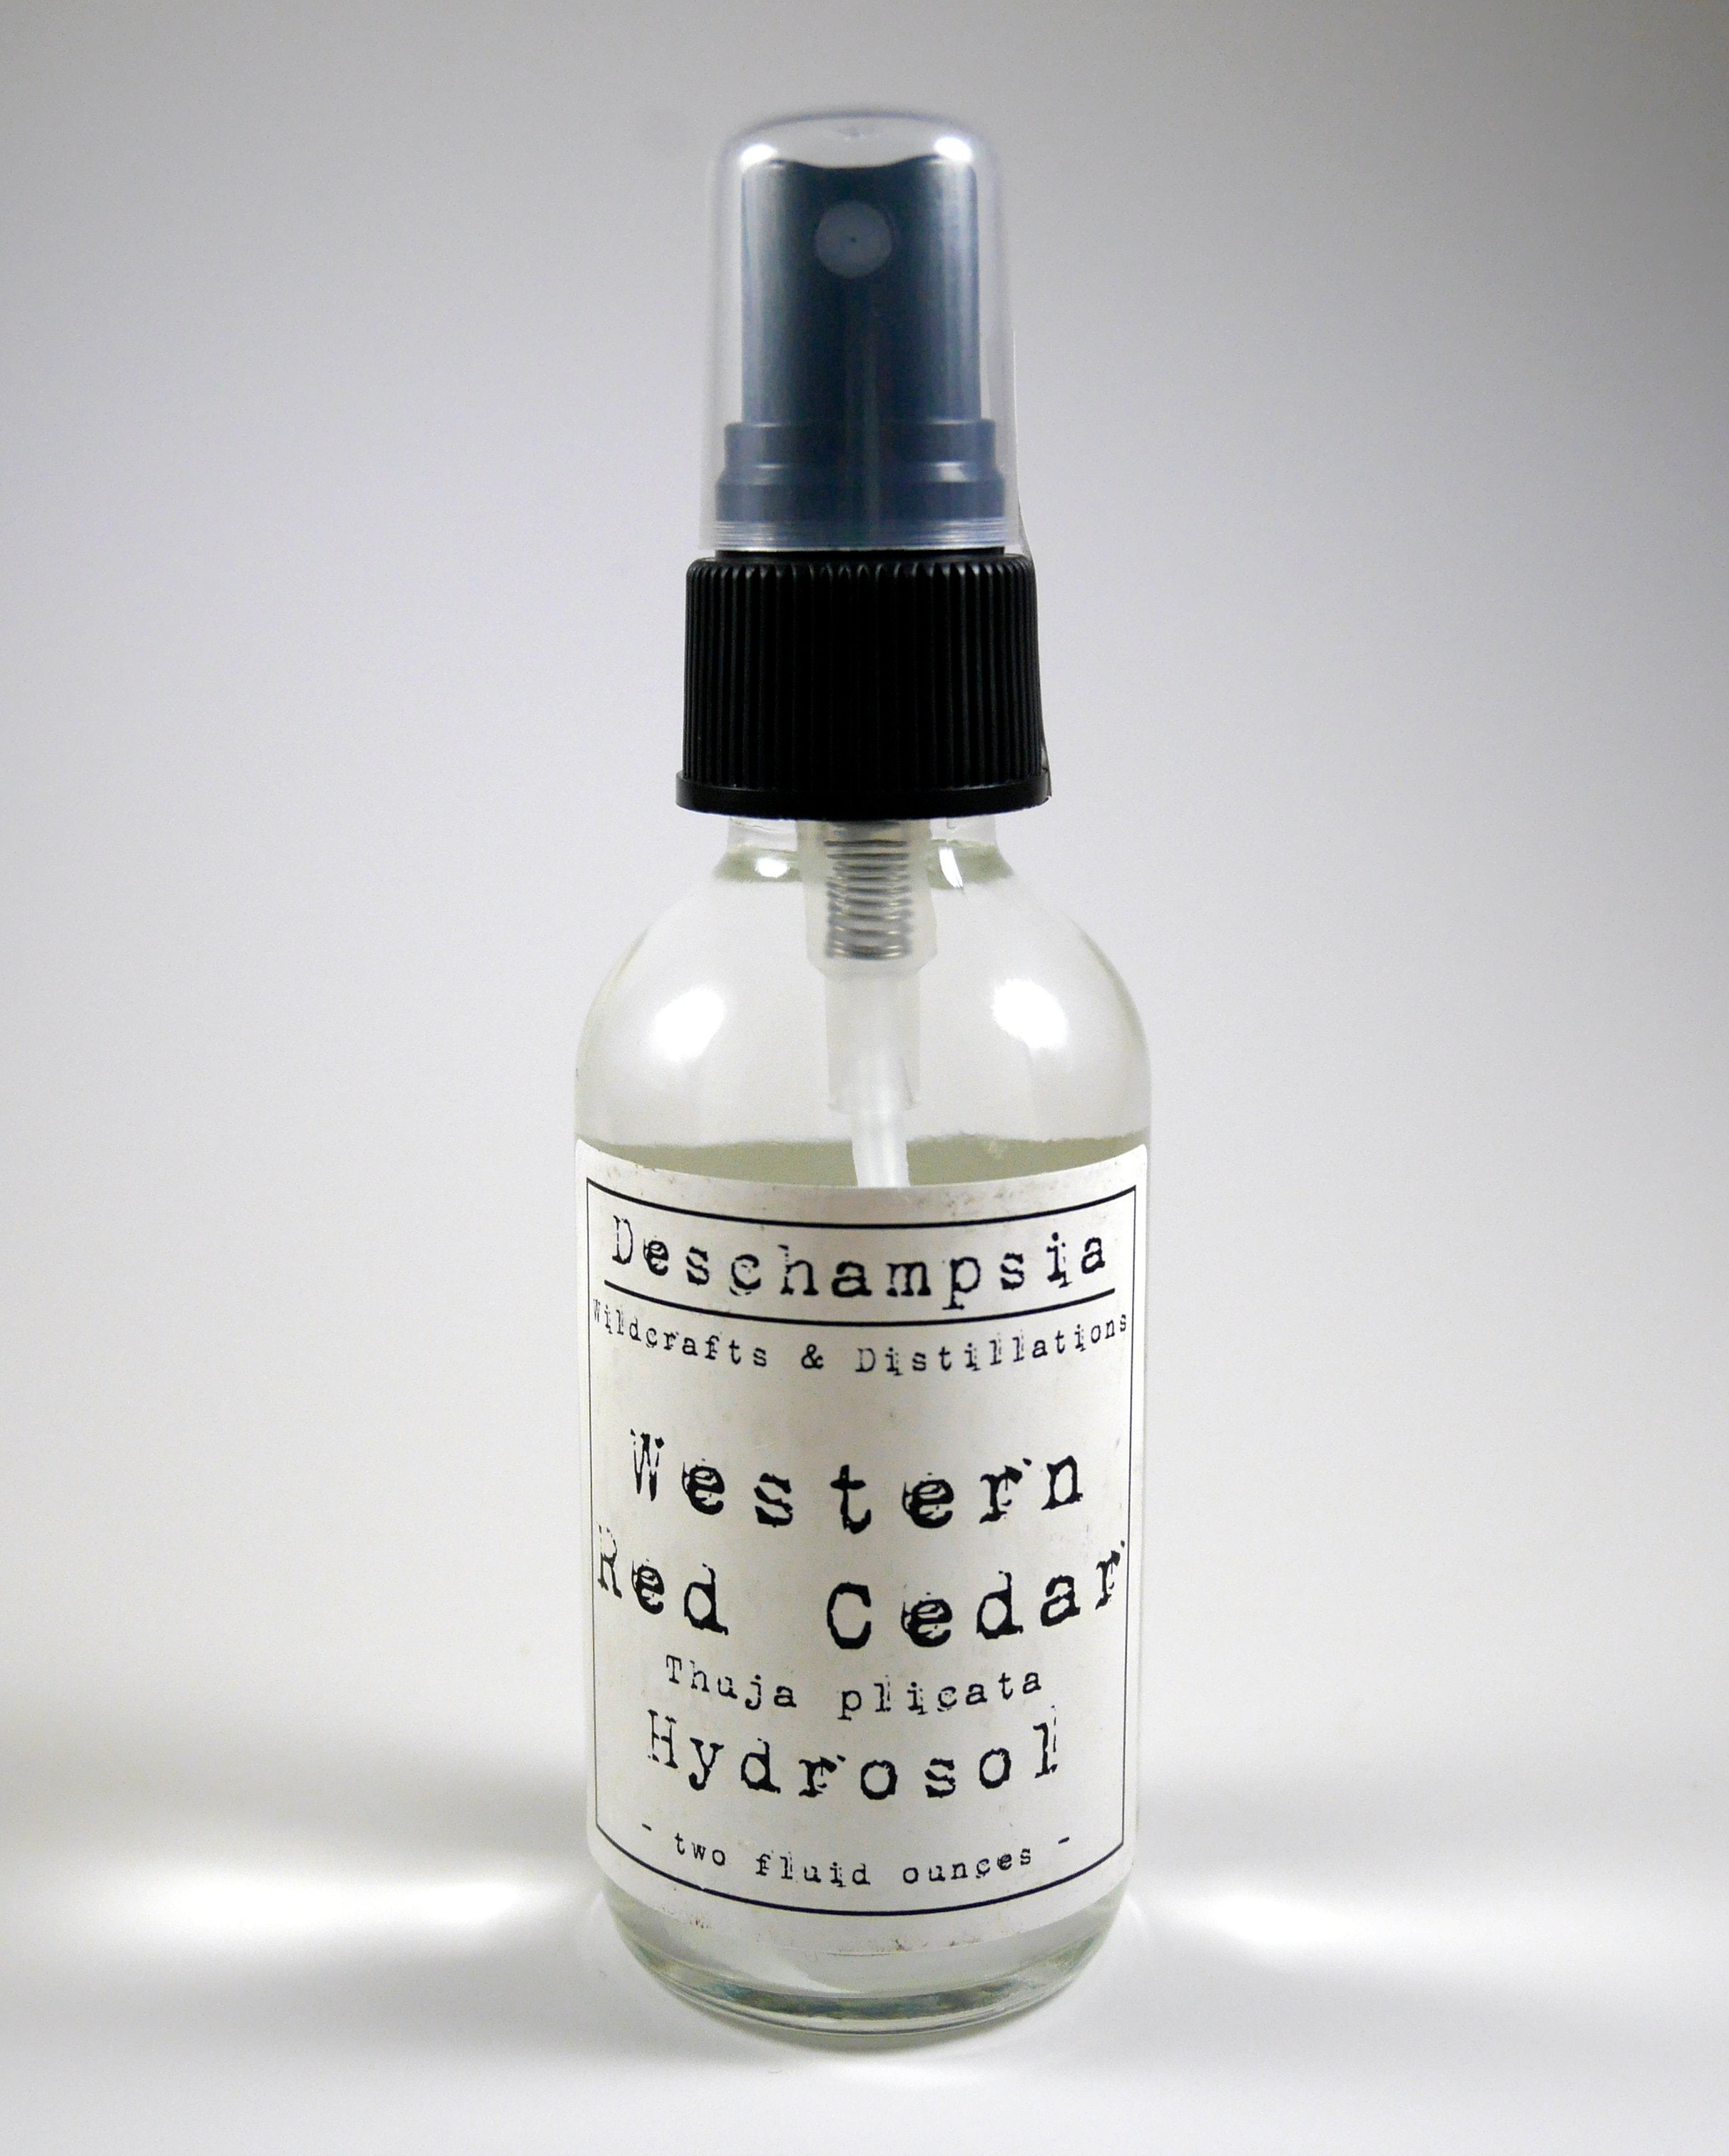 Western Red Cedar Hydrosol - Deschampsia